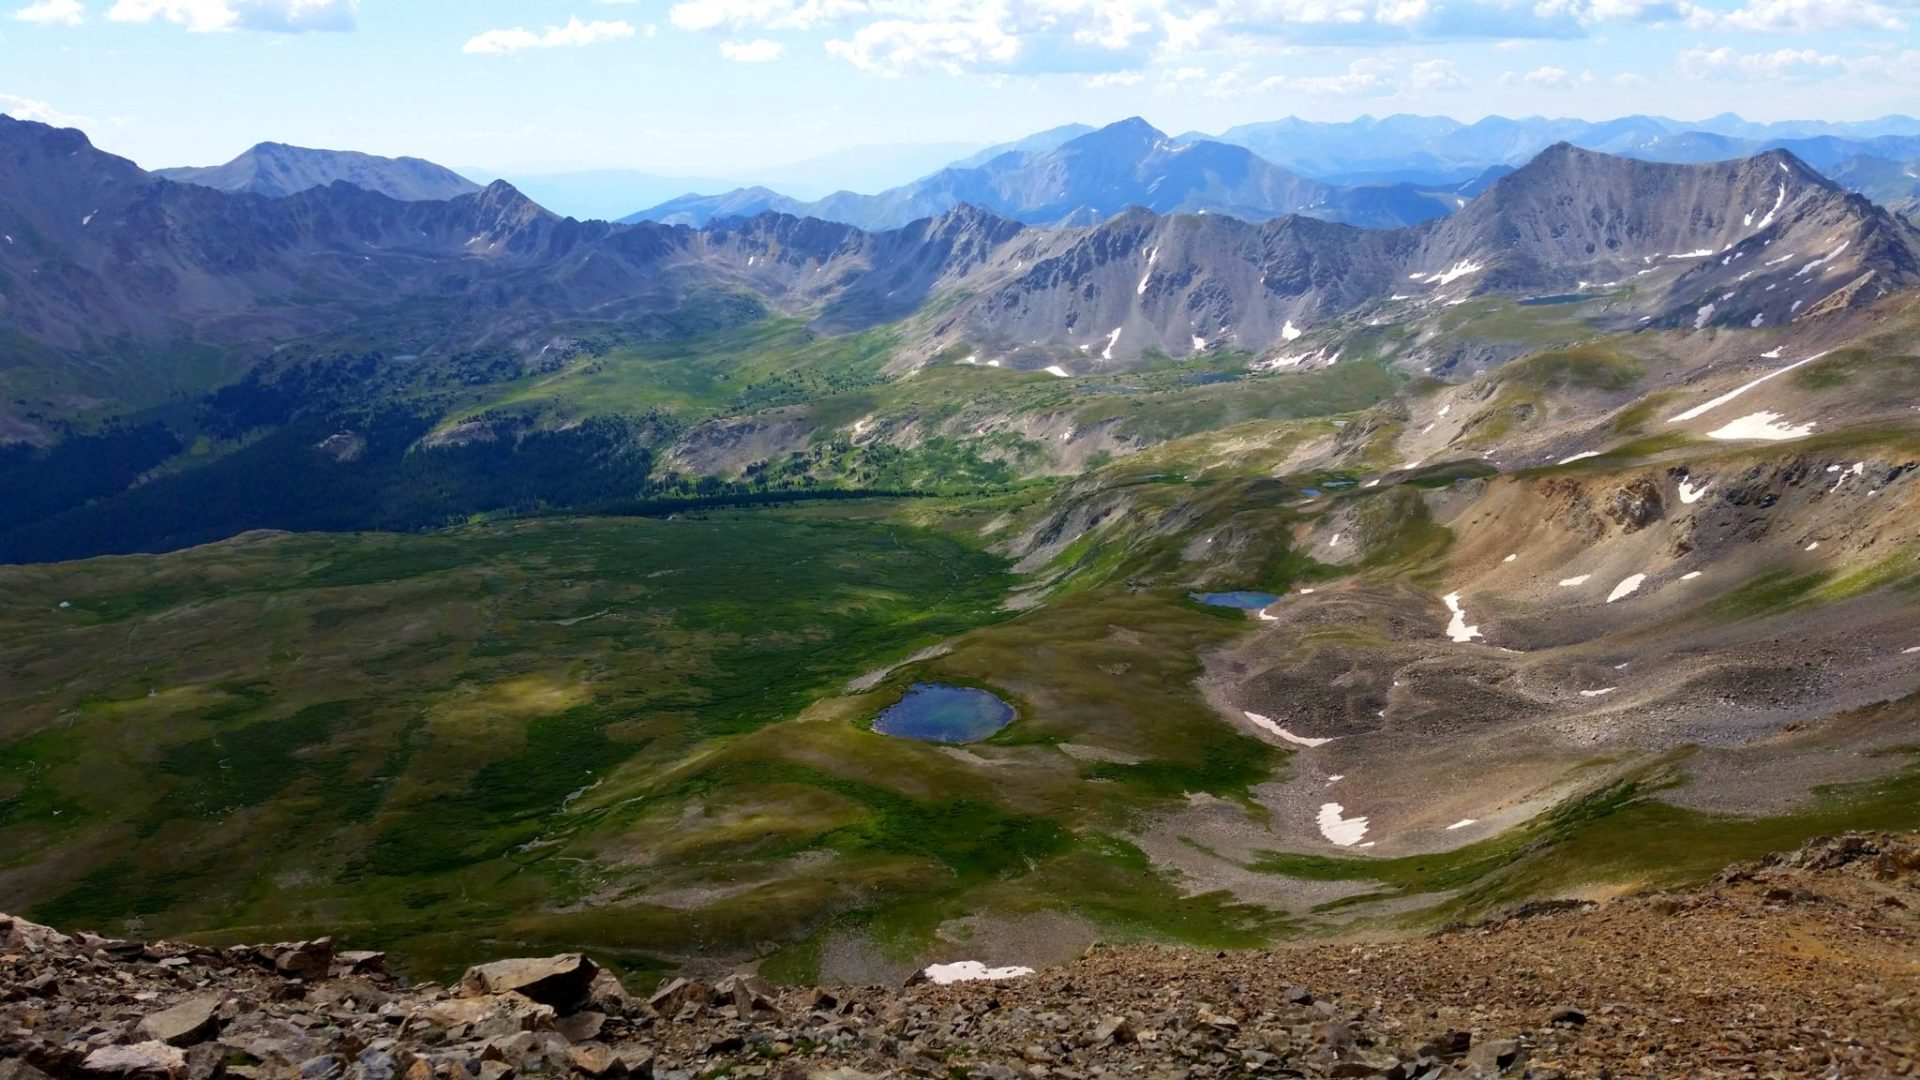 From left - Mt Columbia (14,073') over the ridge, Mt Yale (14,196') middle front, Mt Princeton (14,197') further back just left of Mt Yale, Mt Antero in the distance, Mt Shavano and Tabeguache Peak towards the right